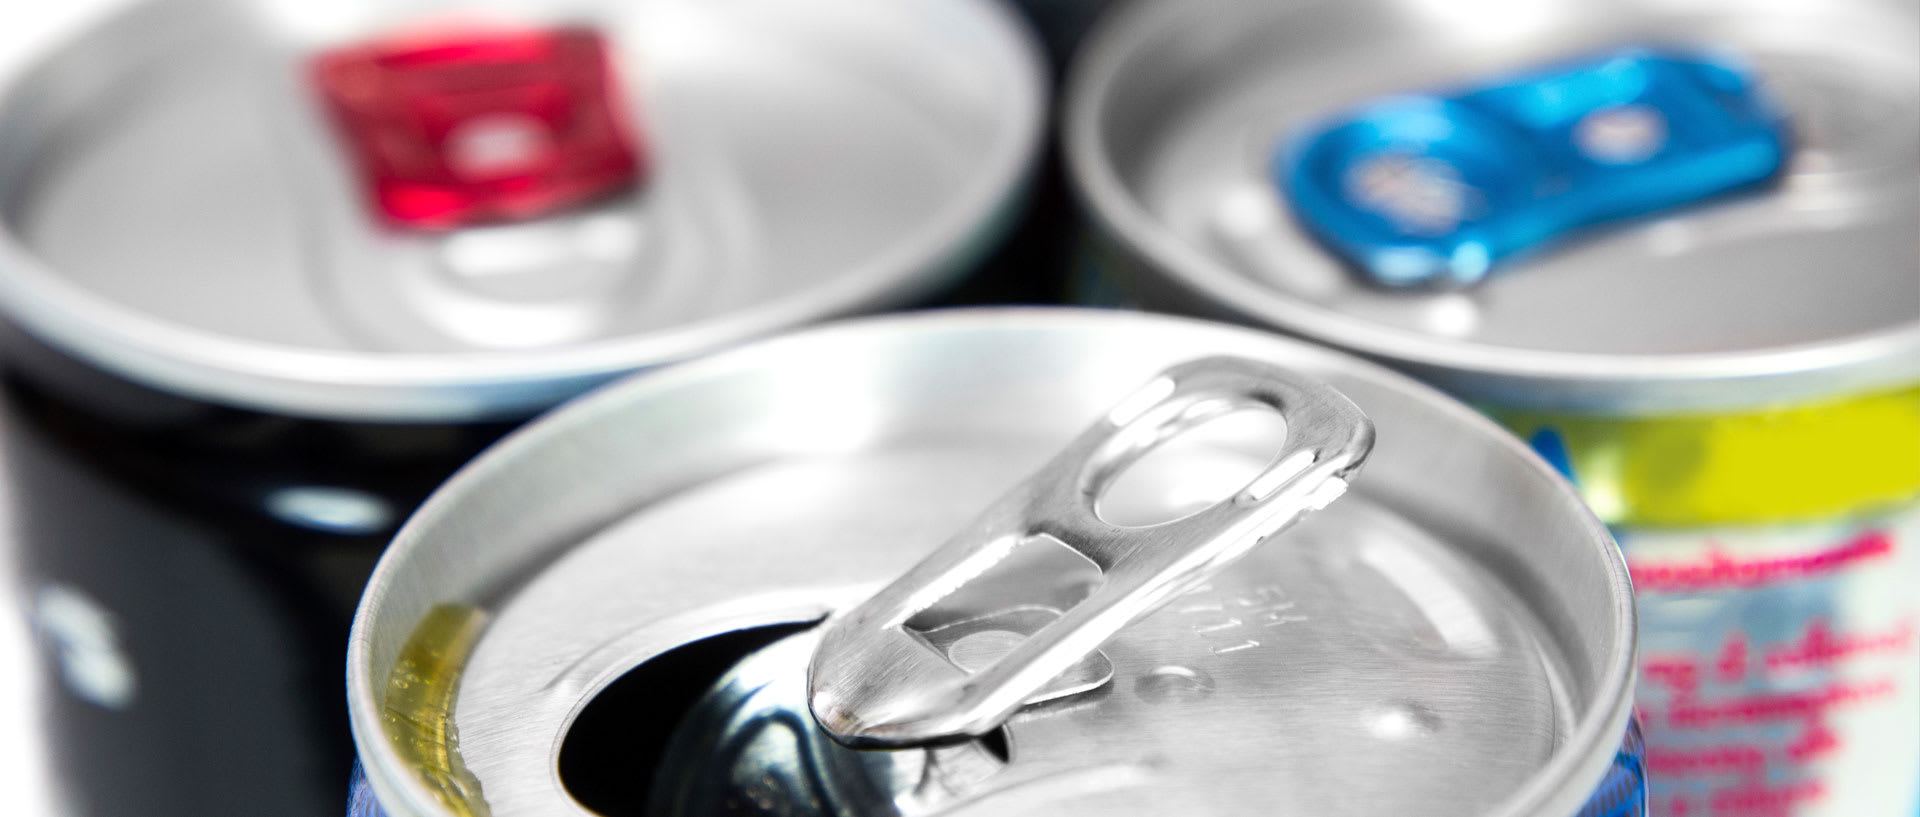 Energy Drinks Could Hurt Your Heart Consumer Reports